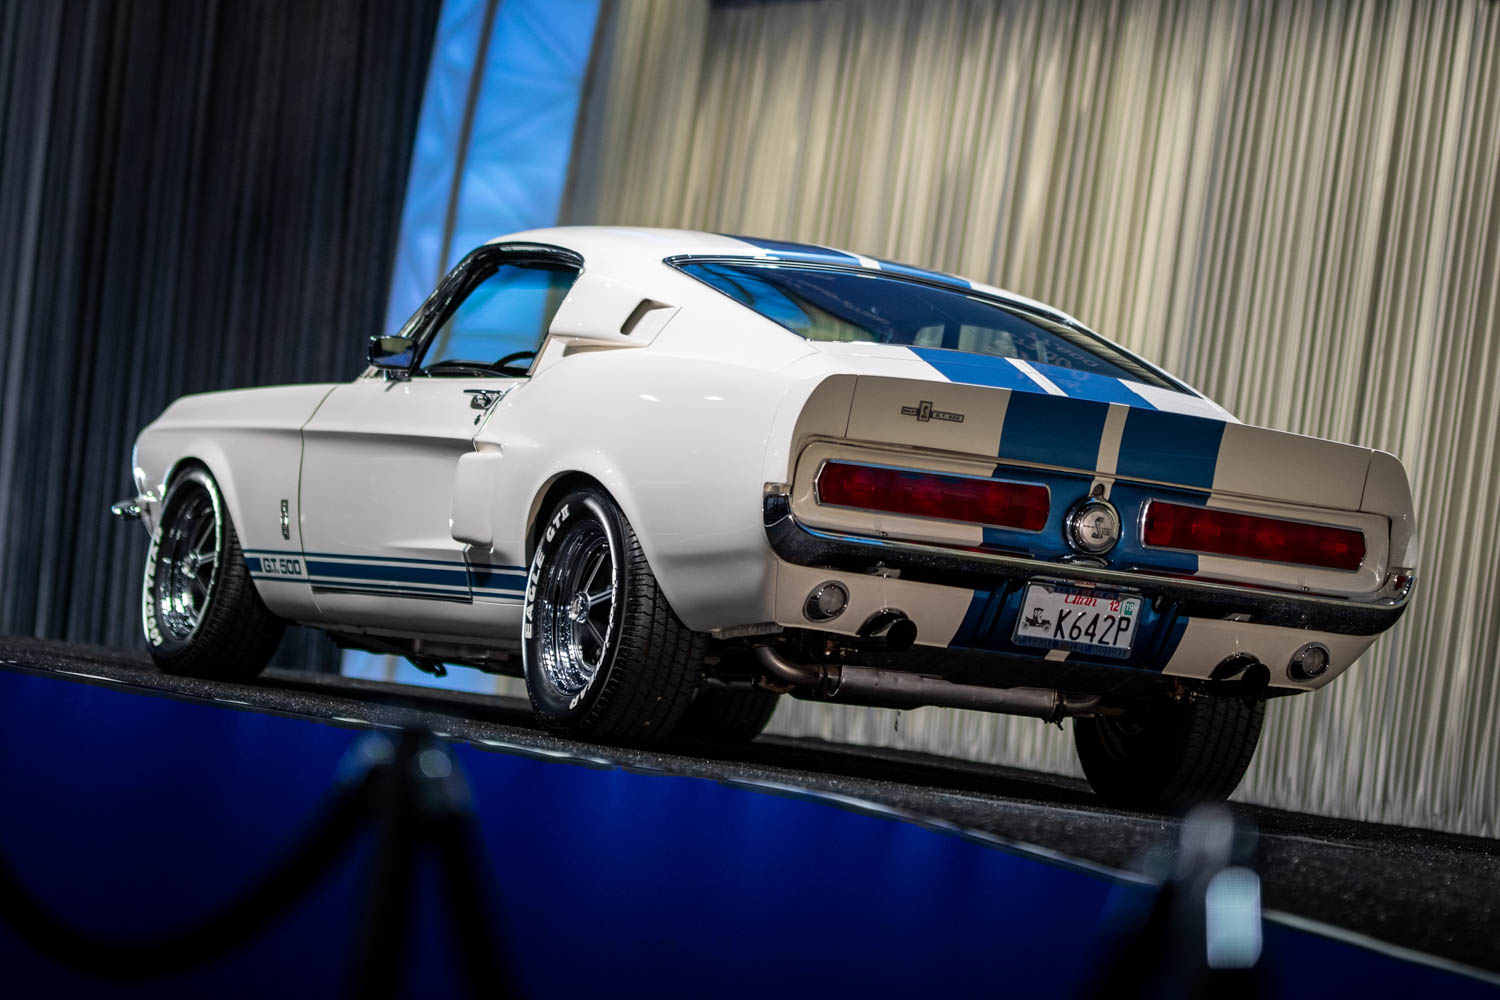 Prudhomme owned 1967 Shelby GT500 at Gooding & Company